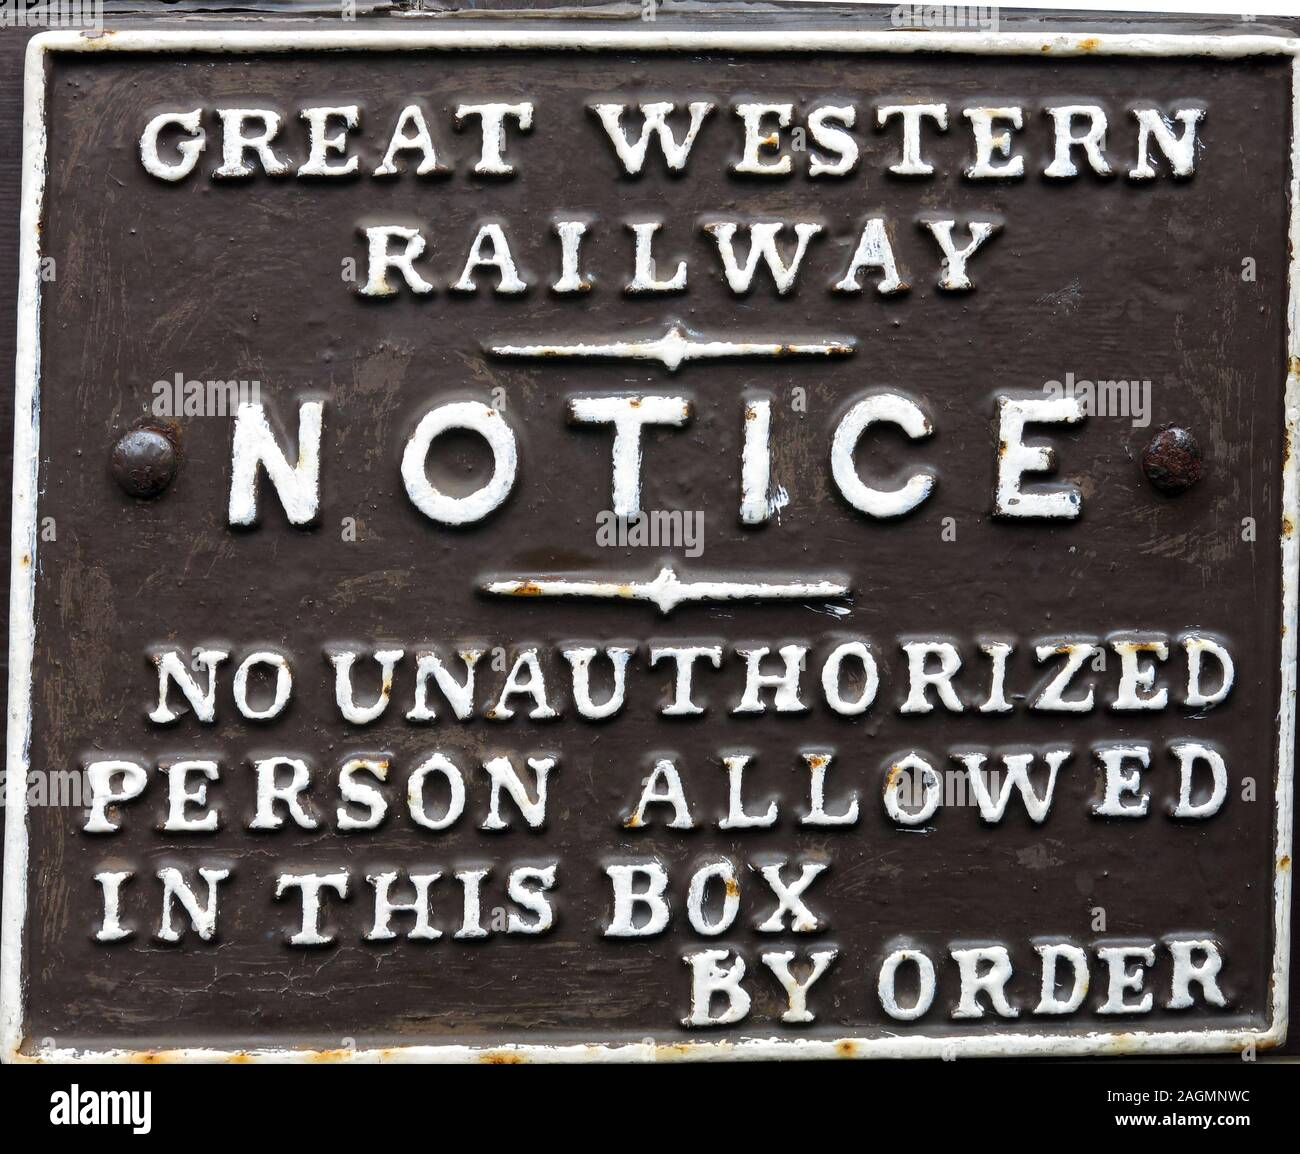 METAL SIGN GREAT WESTERN RAILWAY CLEANING /& MAINTENANCE